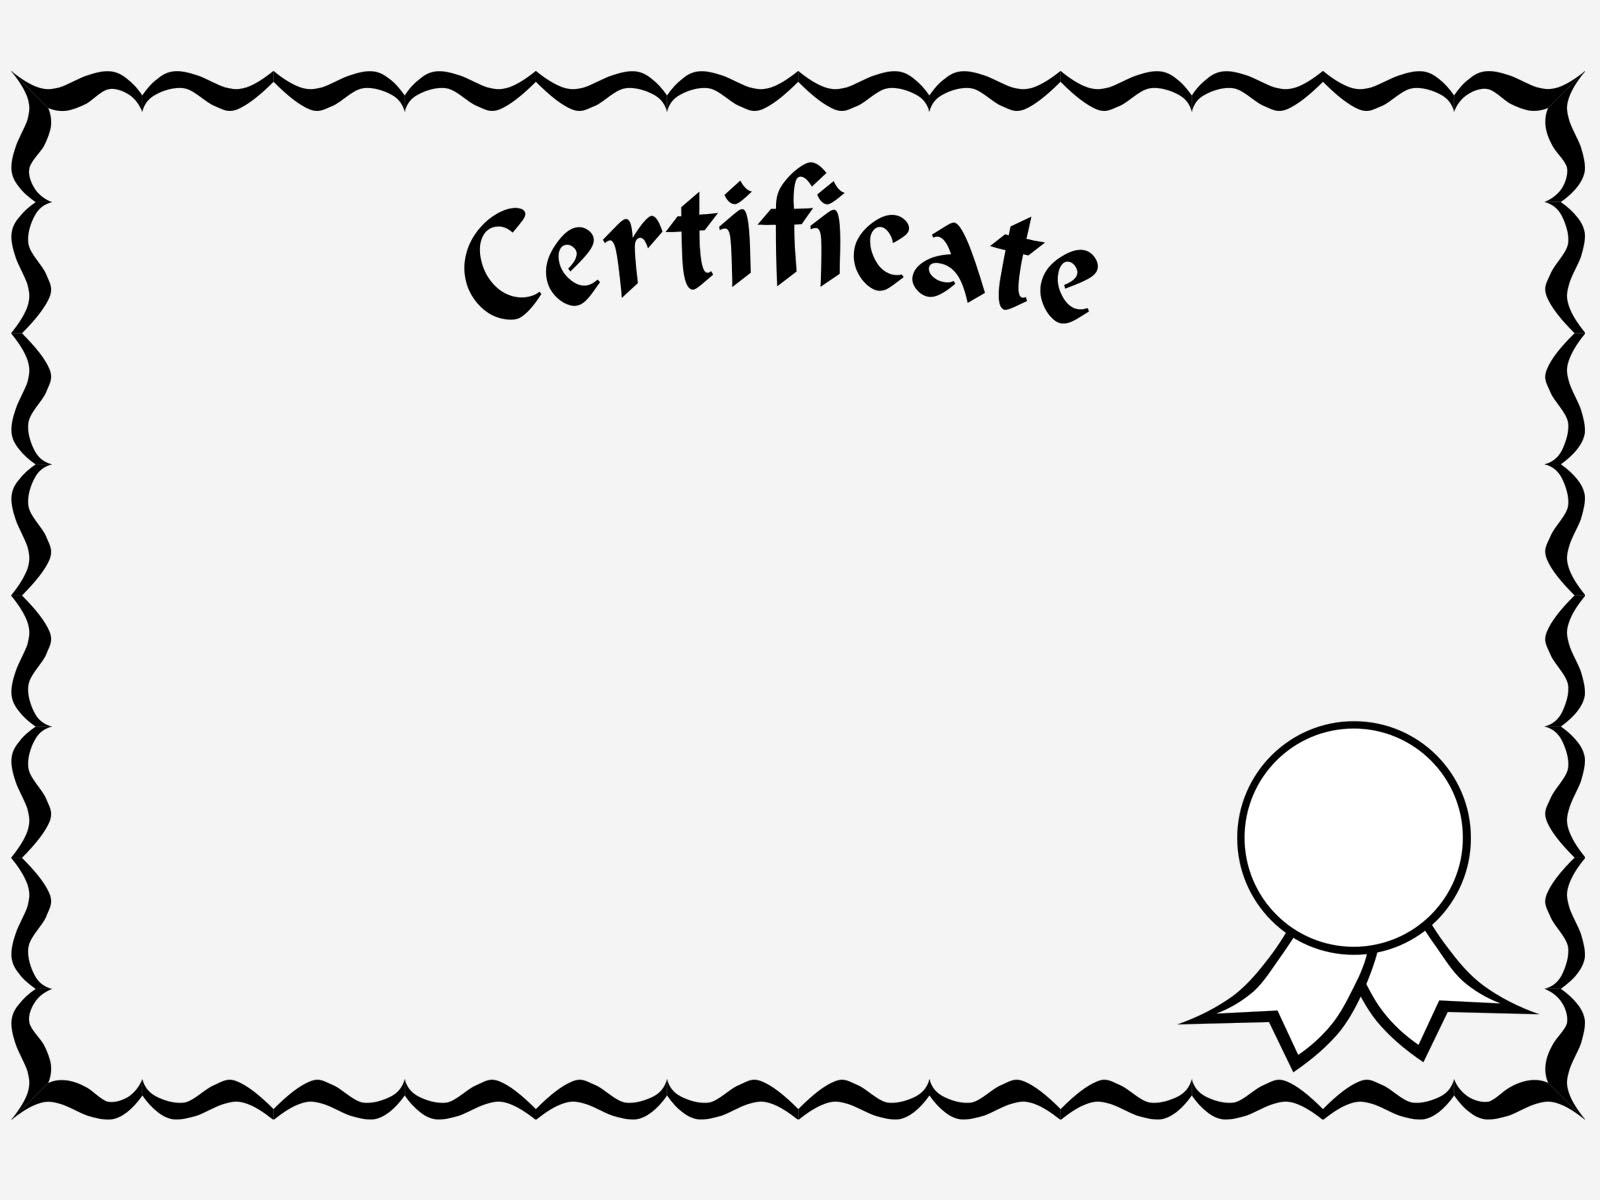 Certificate borders and frames clipart free download best 1600x1200 graduation clipart diploma frame yadclub Gallery